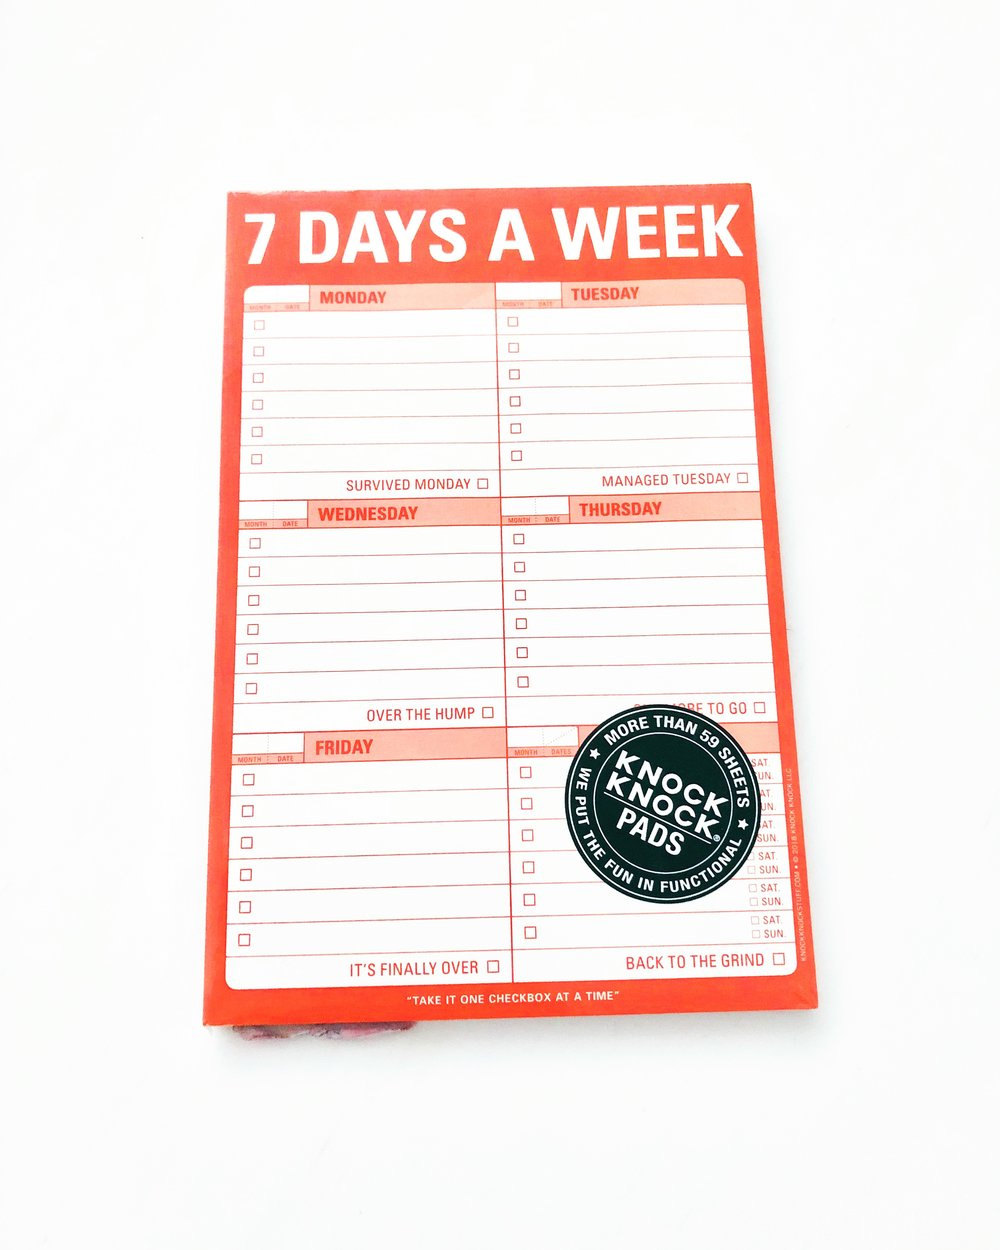 Cmid | Christy Maingot Interior Design  7 Days A Week Planner intended for 7 Days A Week Planner